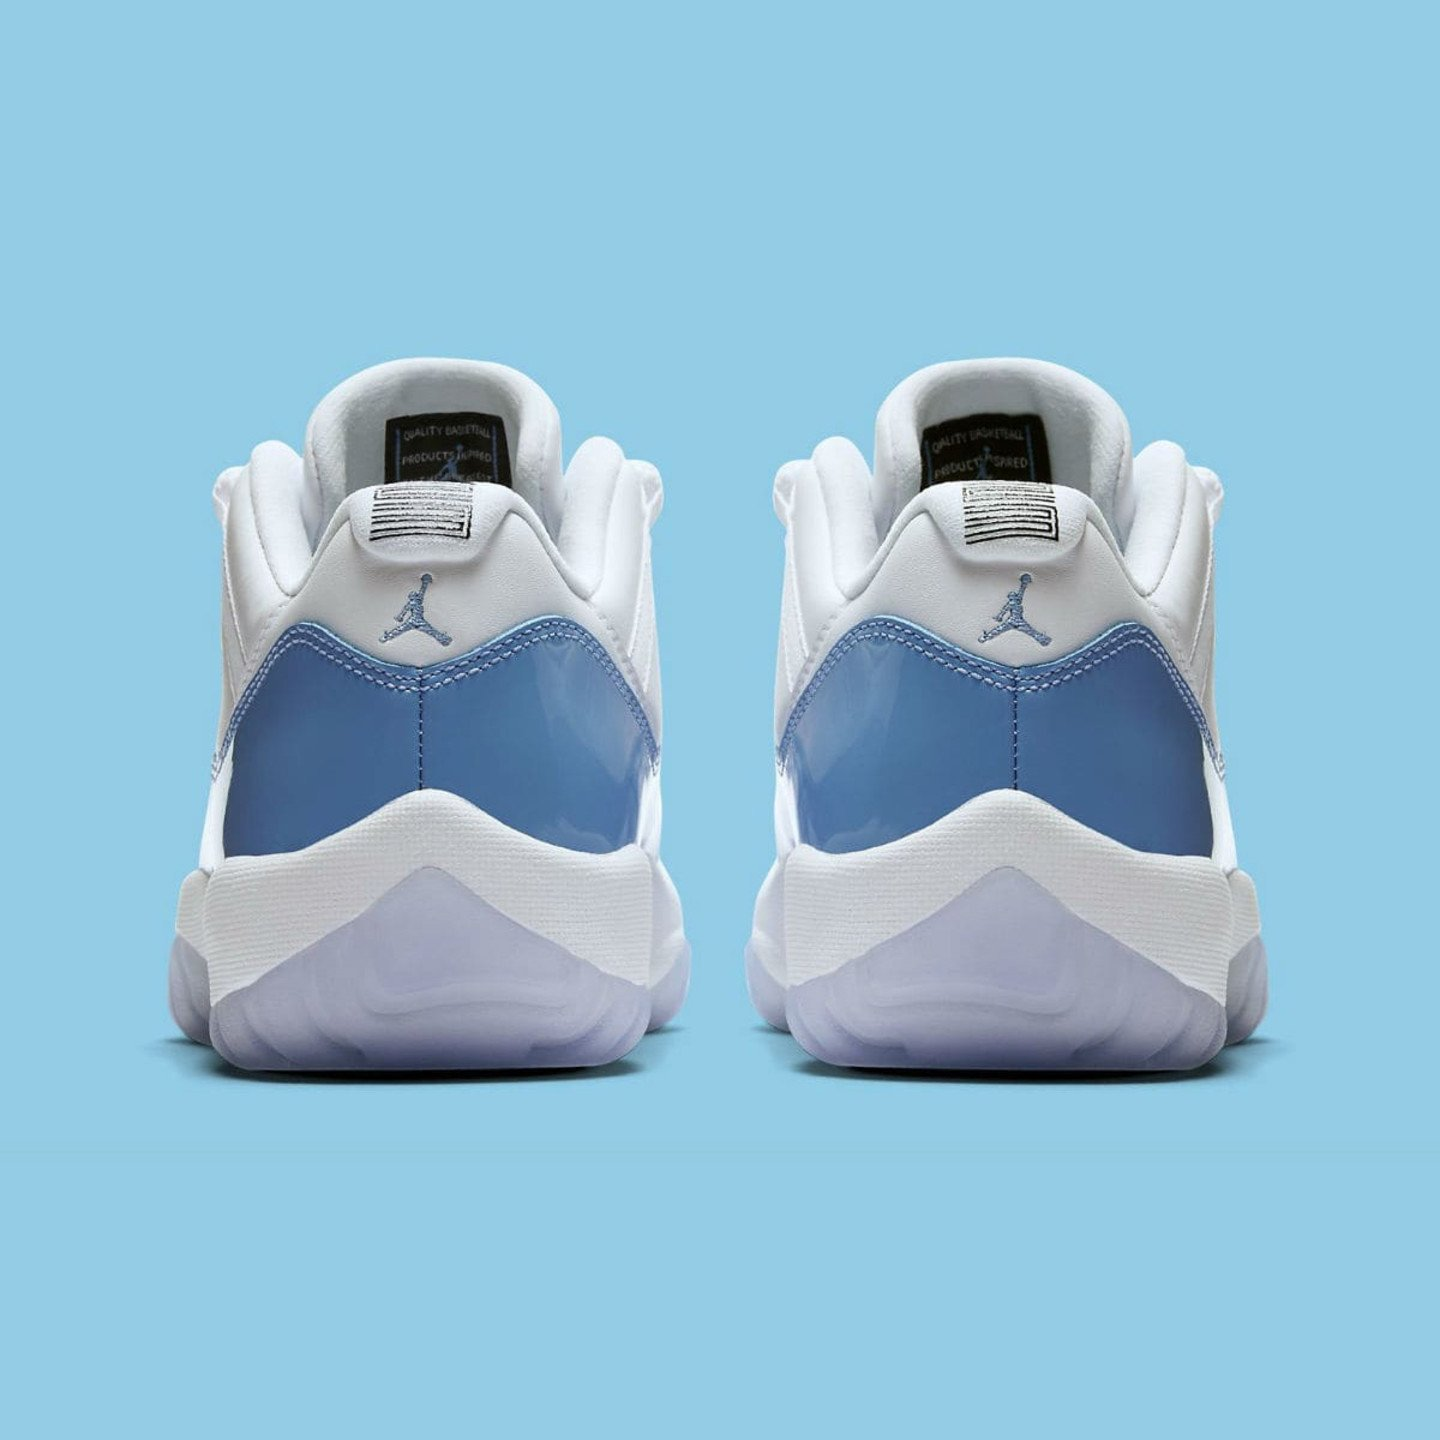 Jordan Air Jordan 11 Retro Low 'UNC' White / University Blue 528895-106